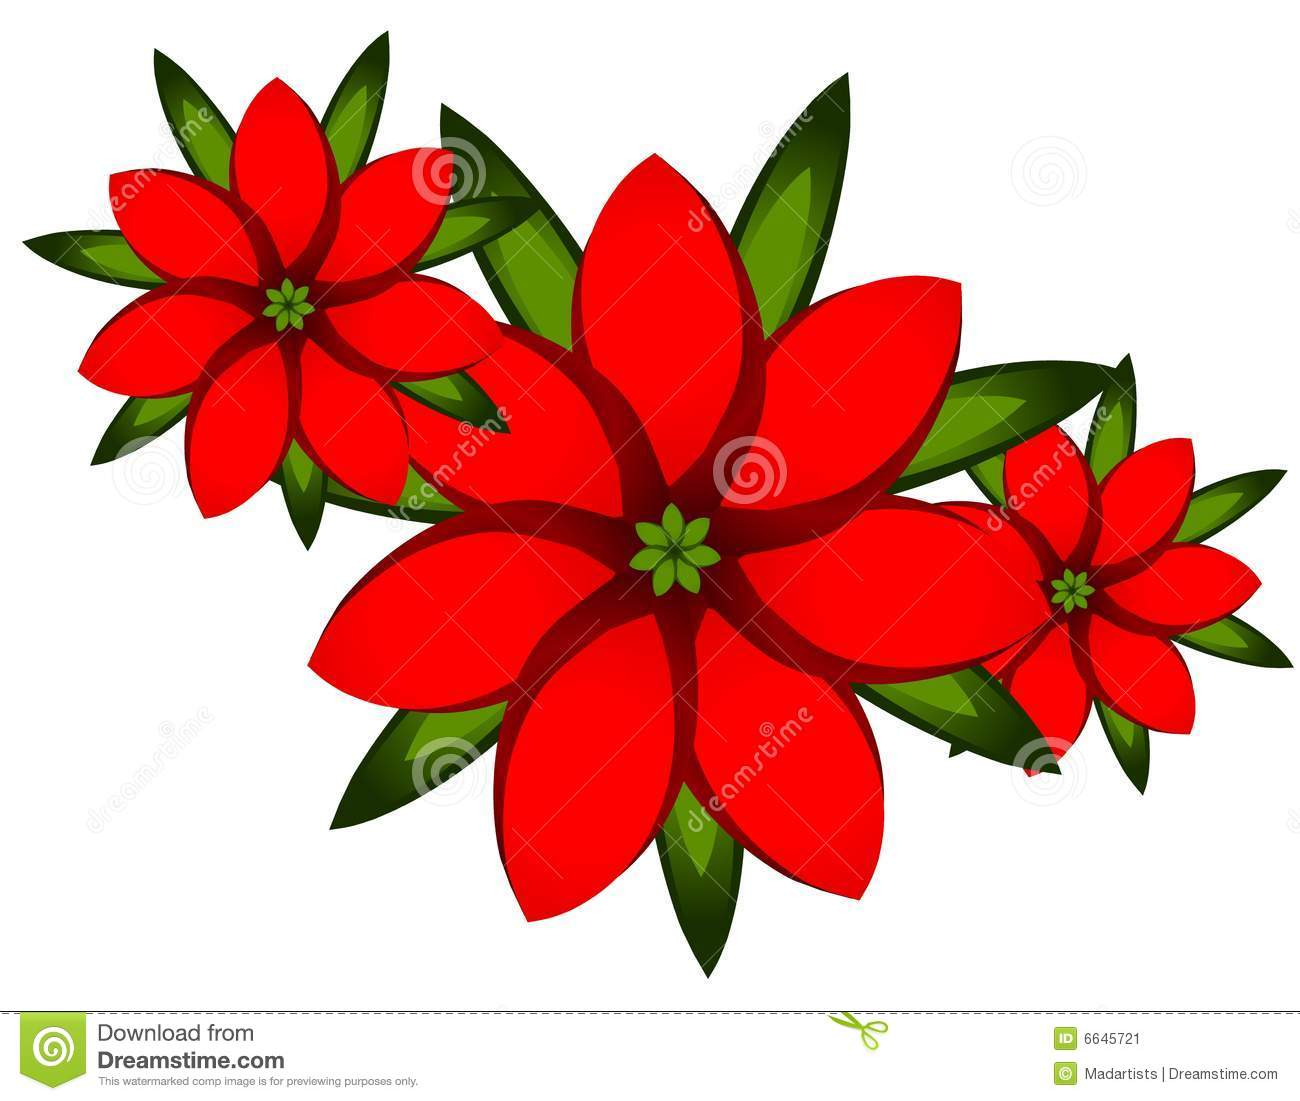 Illustration Featuring A Simple Arrangment Of Red Poinsettia Flowers